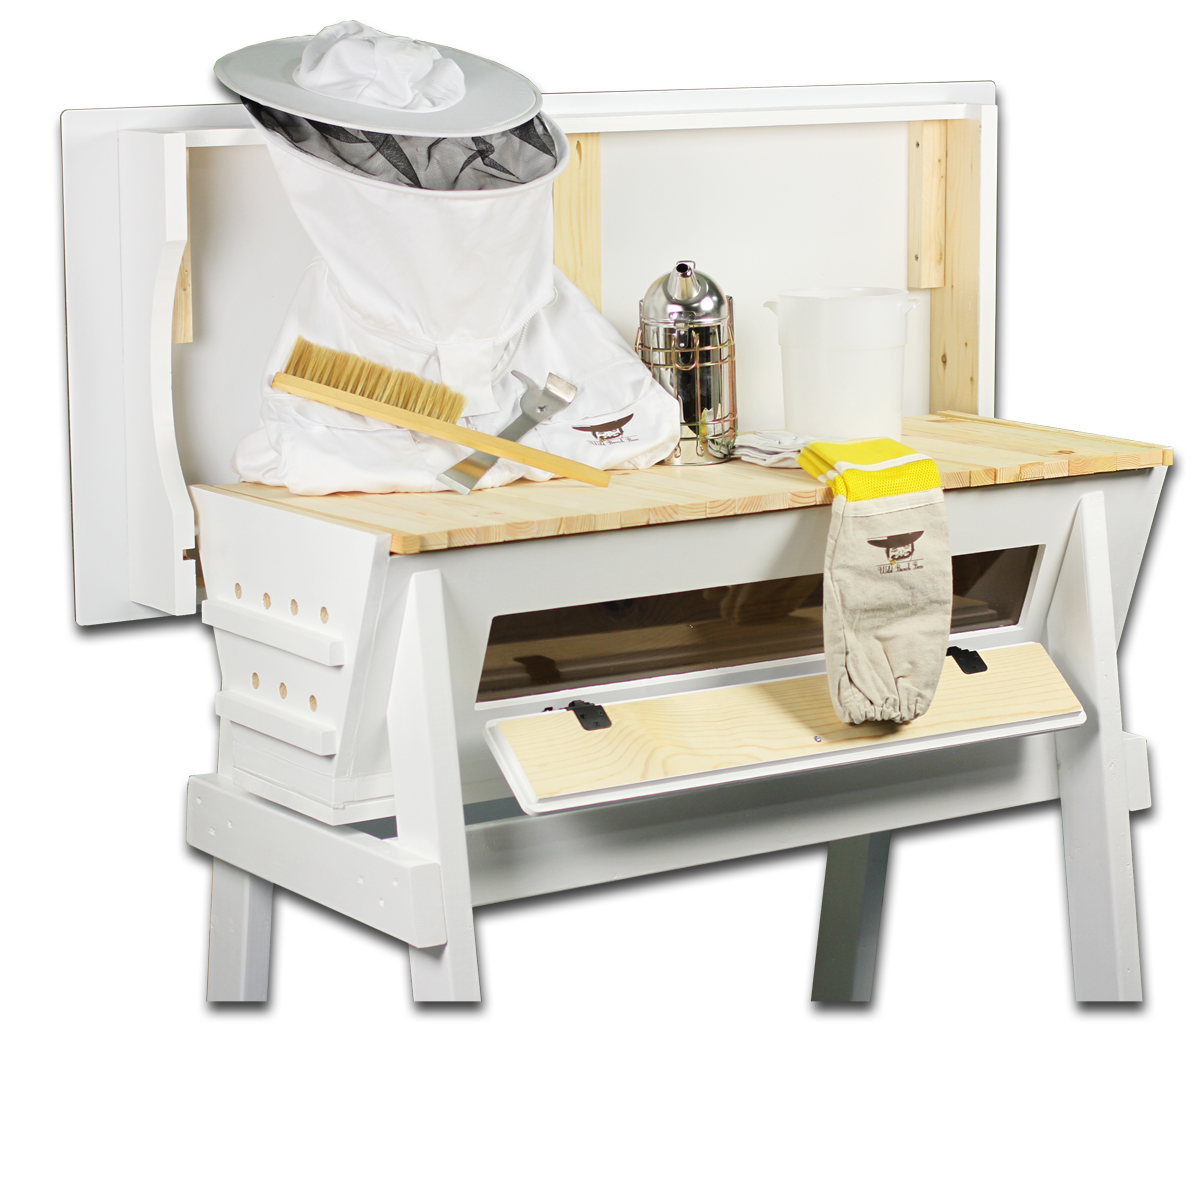 Our Beekeeping Starter Kit Comes With Hive, Hive Stand, Jackets, Gloves,  Smoker